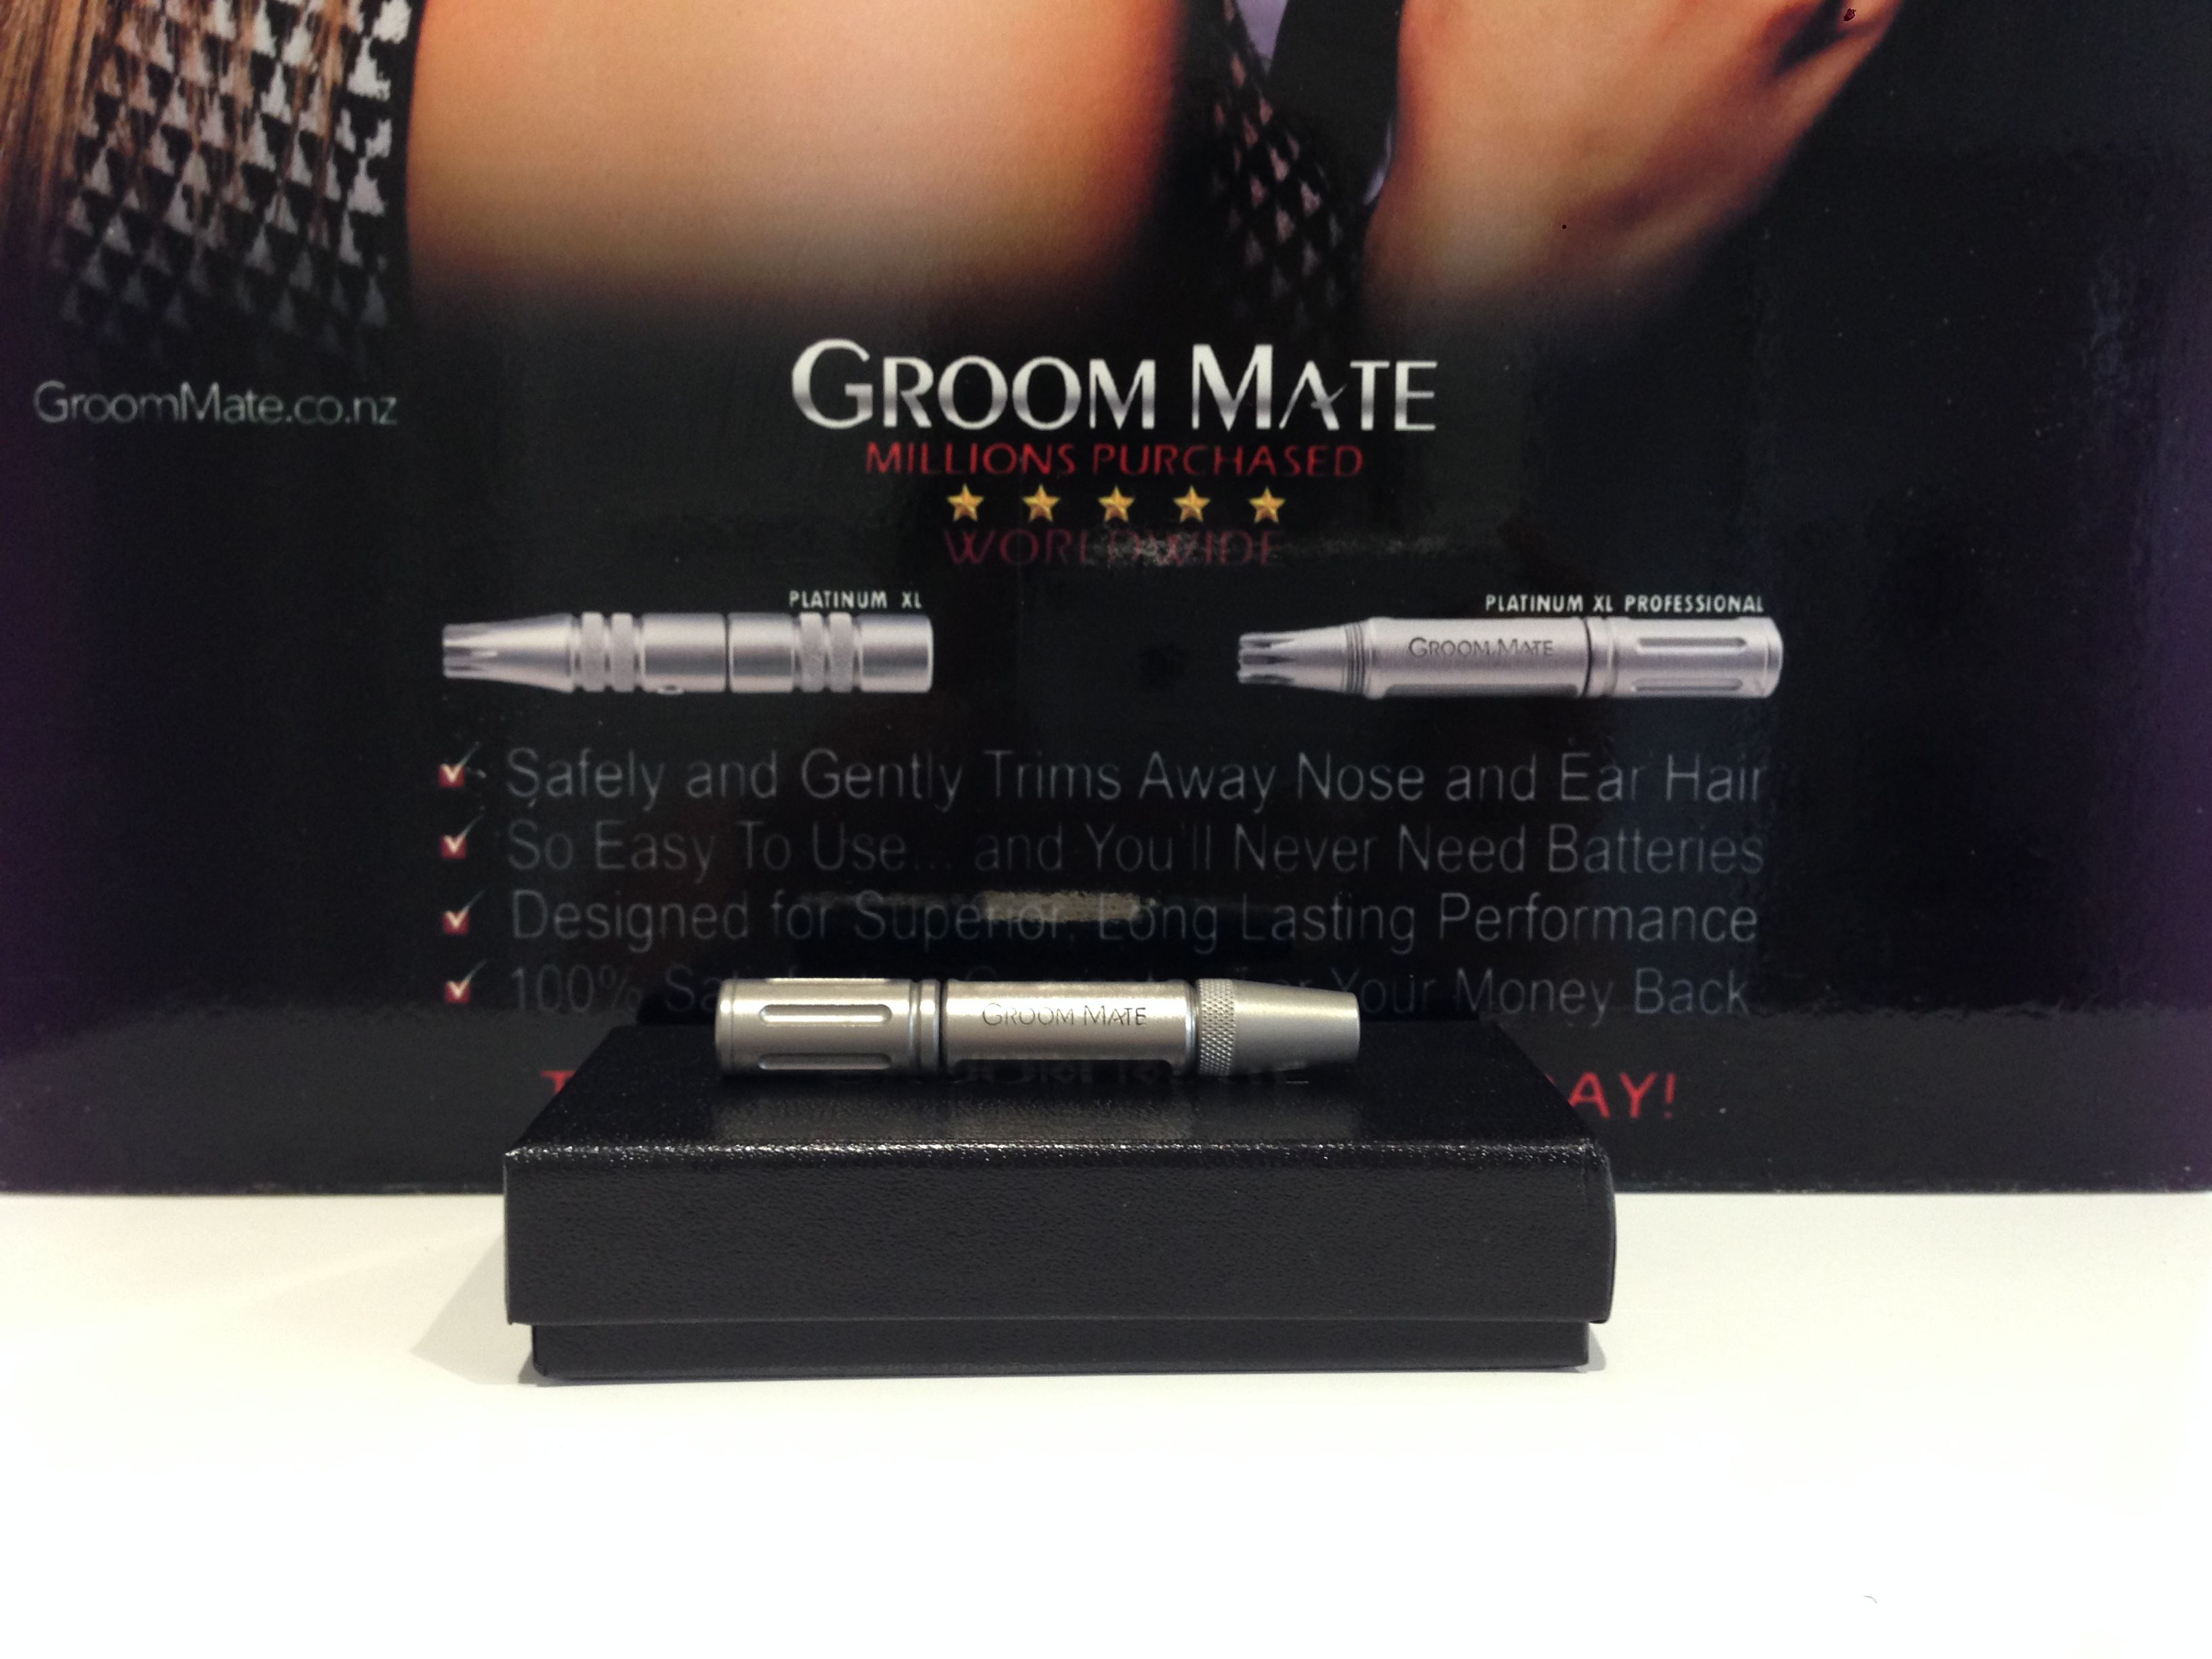 Groom Mate Platinum Xl For Men And Women